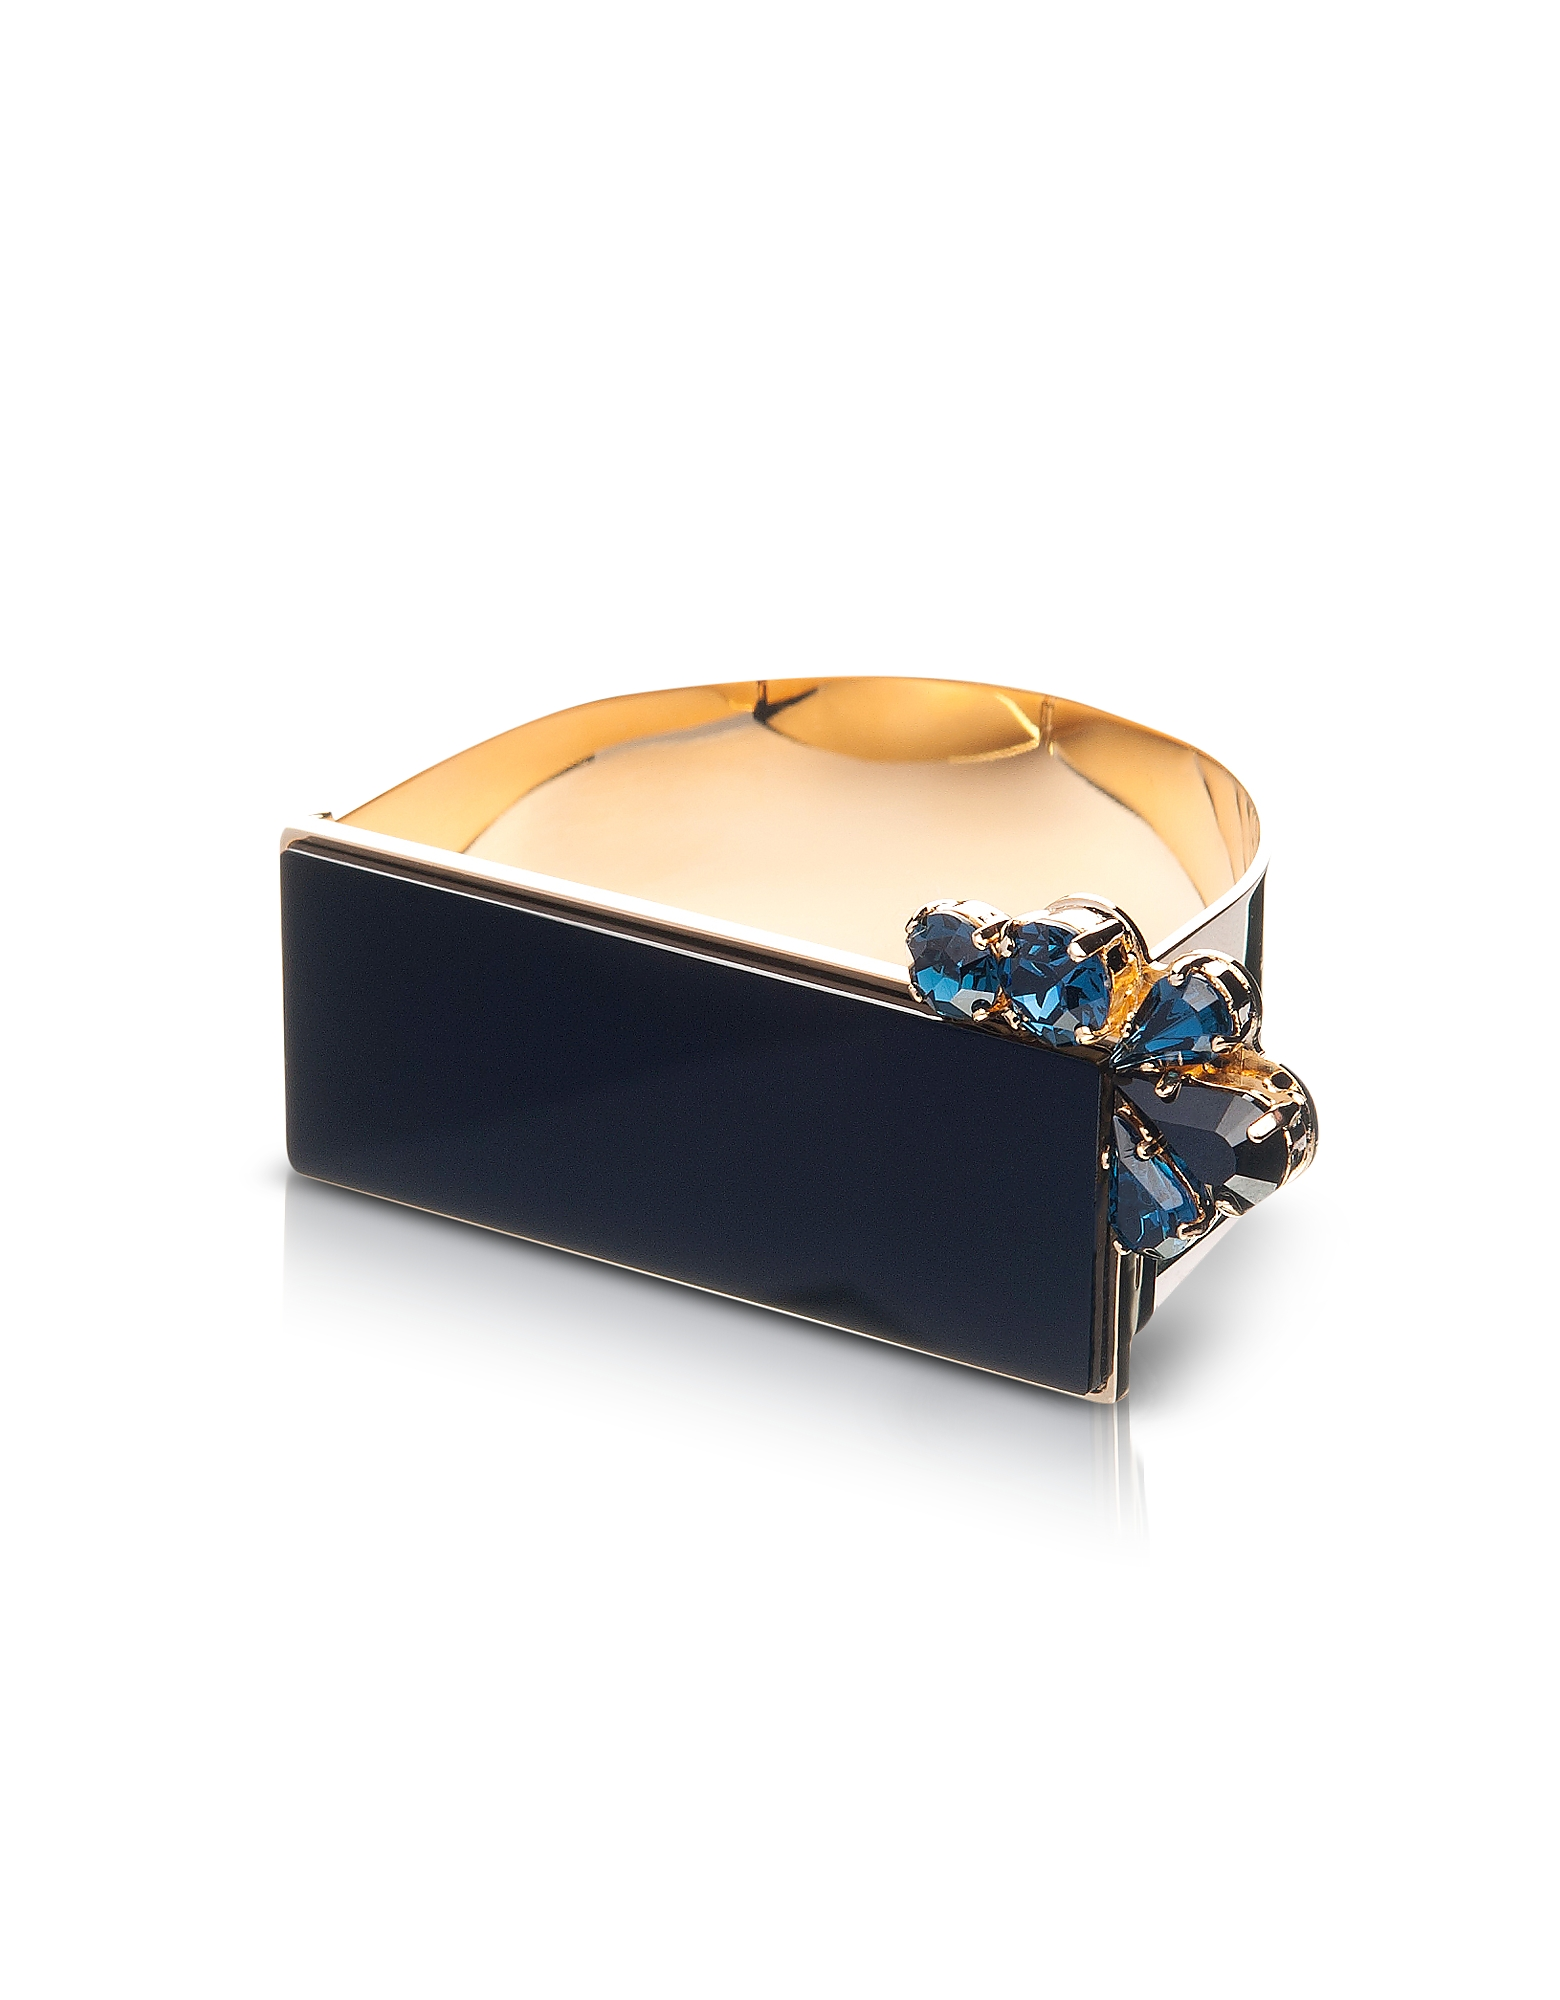 Egotique Bracelets, Arlequin Golden Brass Cuff w/Black Top and Two Tone Crystals